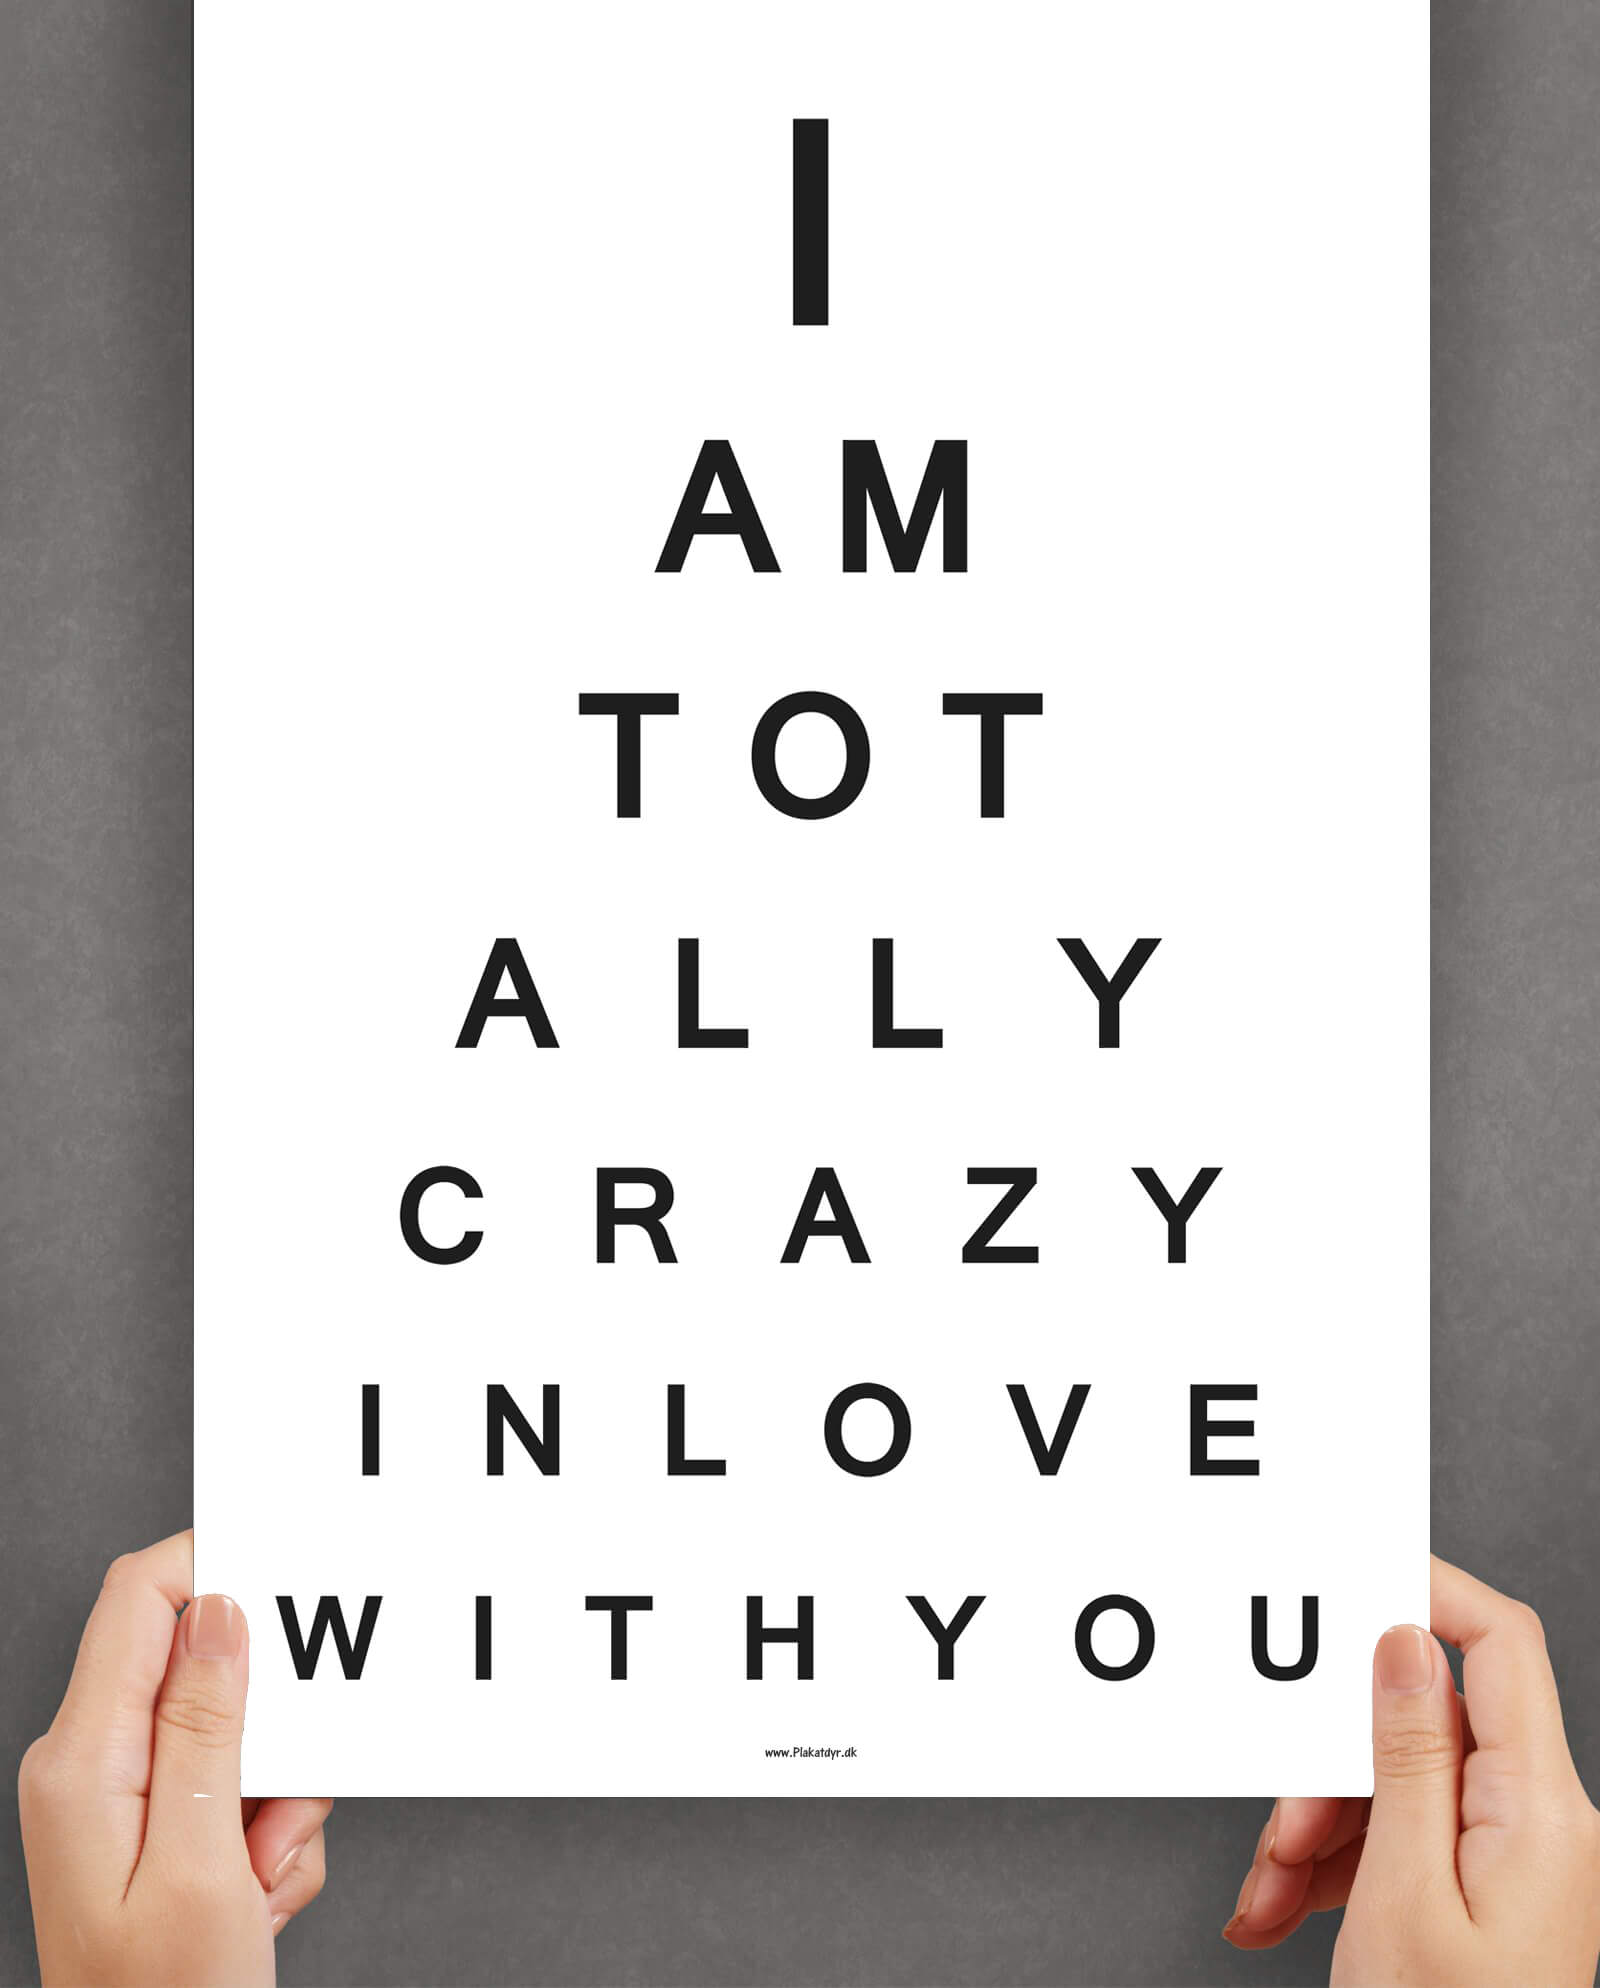 I-am-tottaly-crazy-in-love-with-you